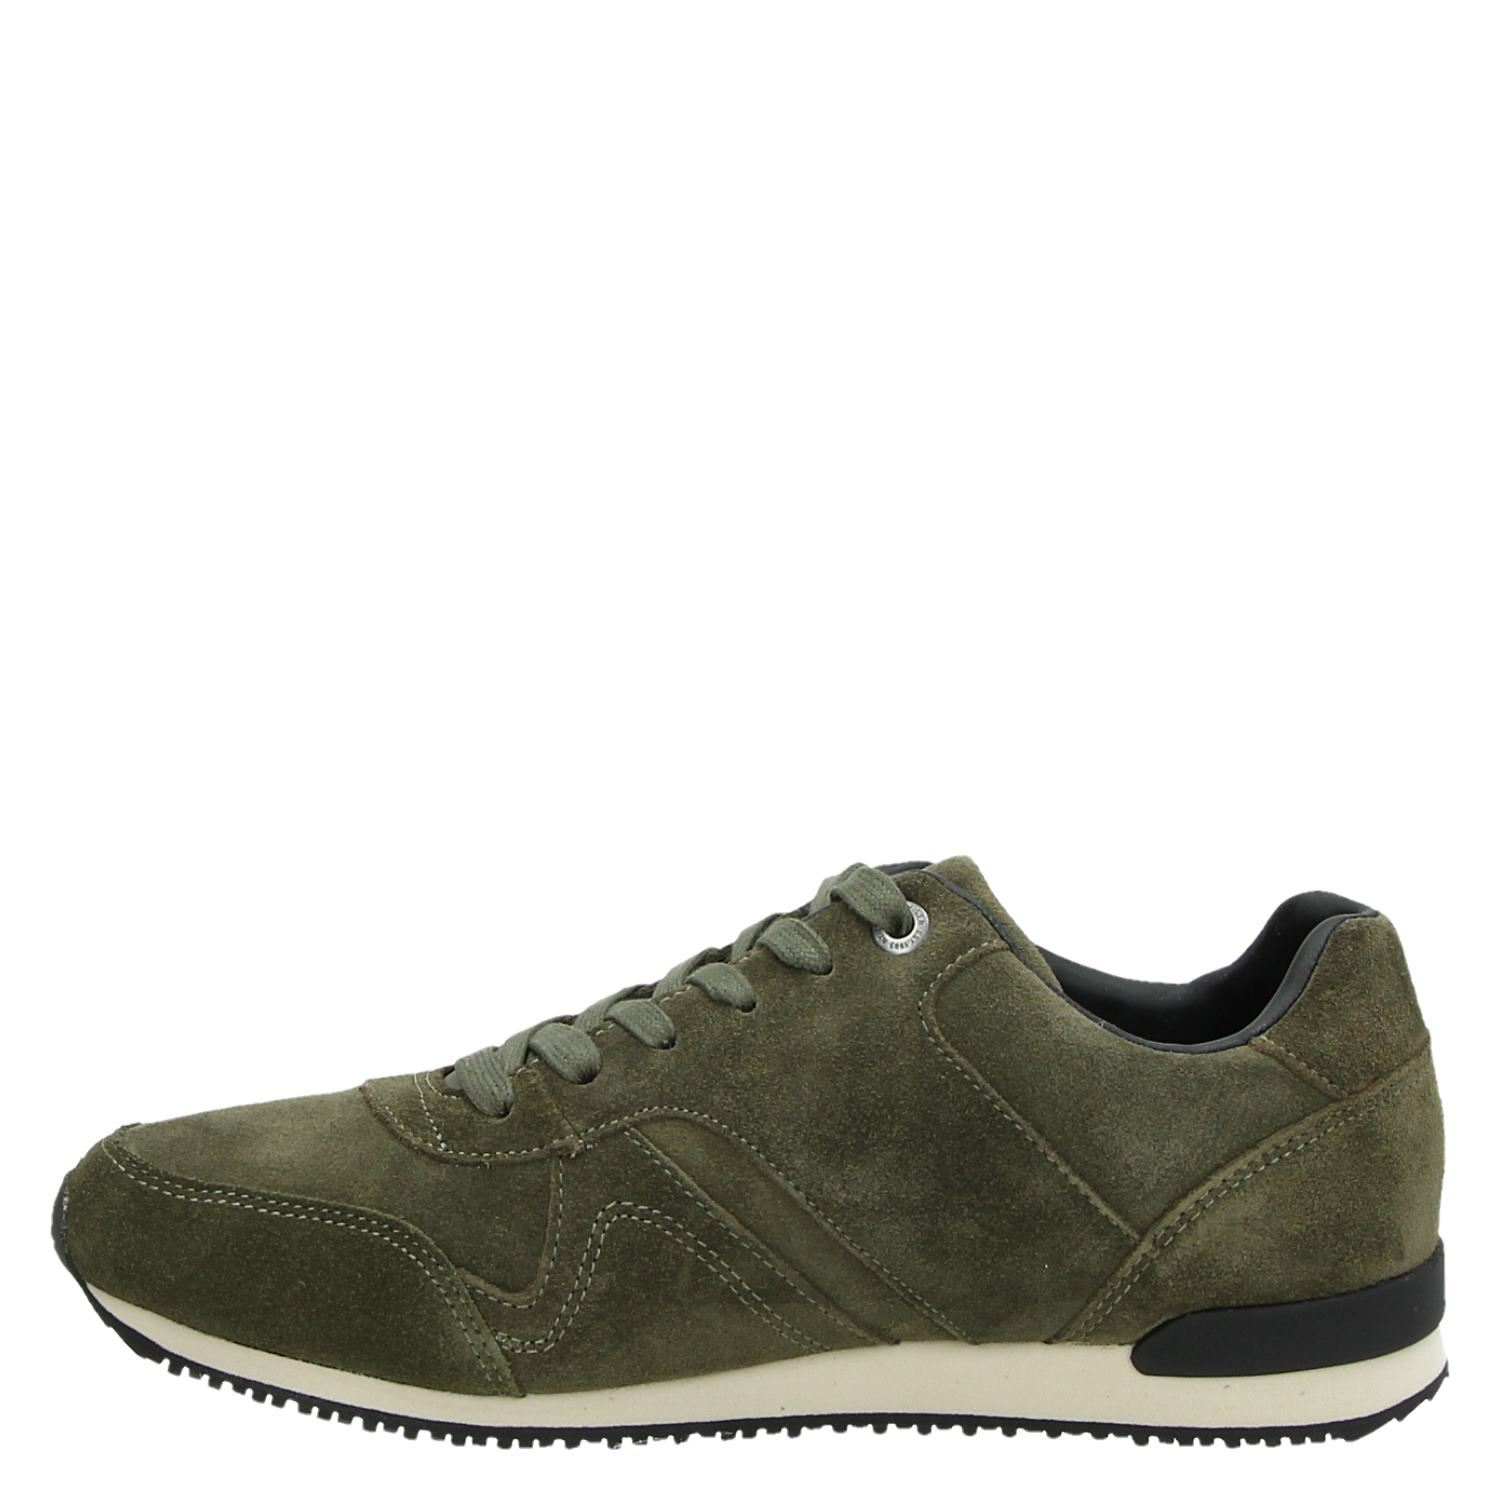 4b64ede97e6 Tommy Hilfiger sneakers - theSneaker.nl